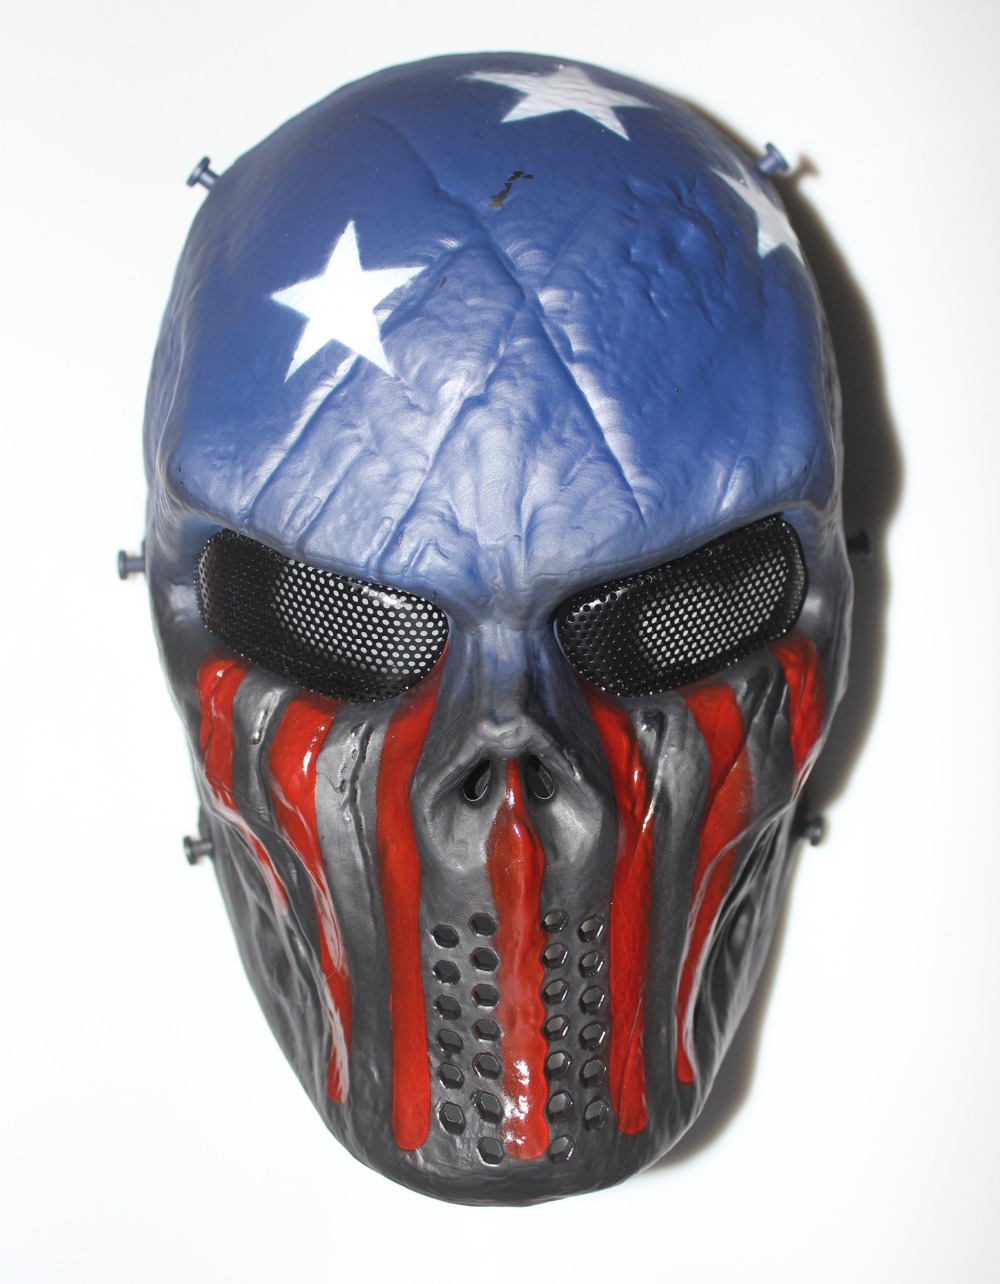 TACTICAL GEAR M06 AIRSOFT PAINTBALL COSPLAY FULL FACE PROTECTION SKULL MASK(Ghost Fire and Captain)